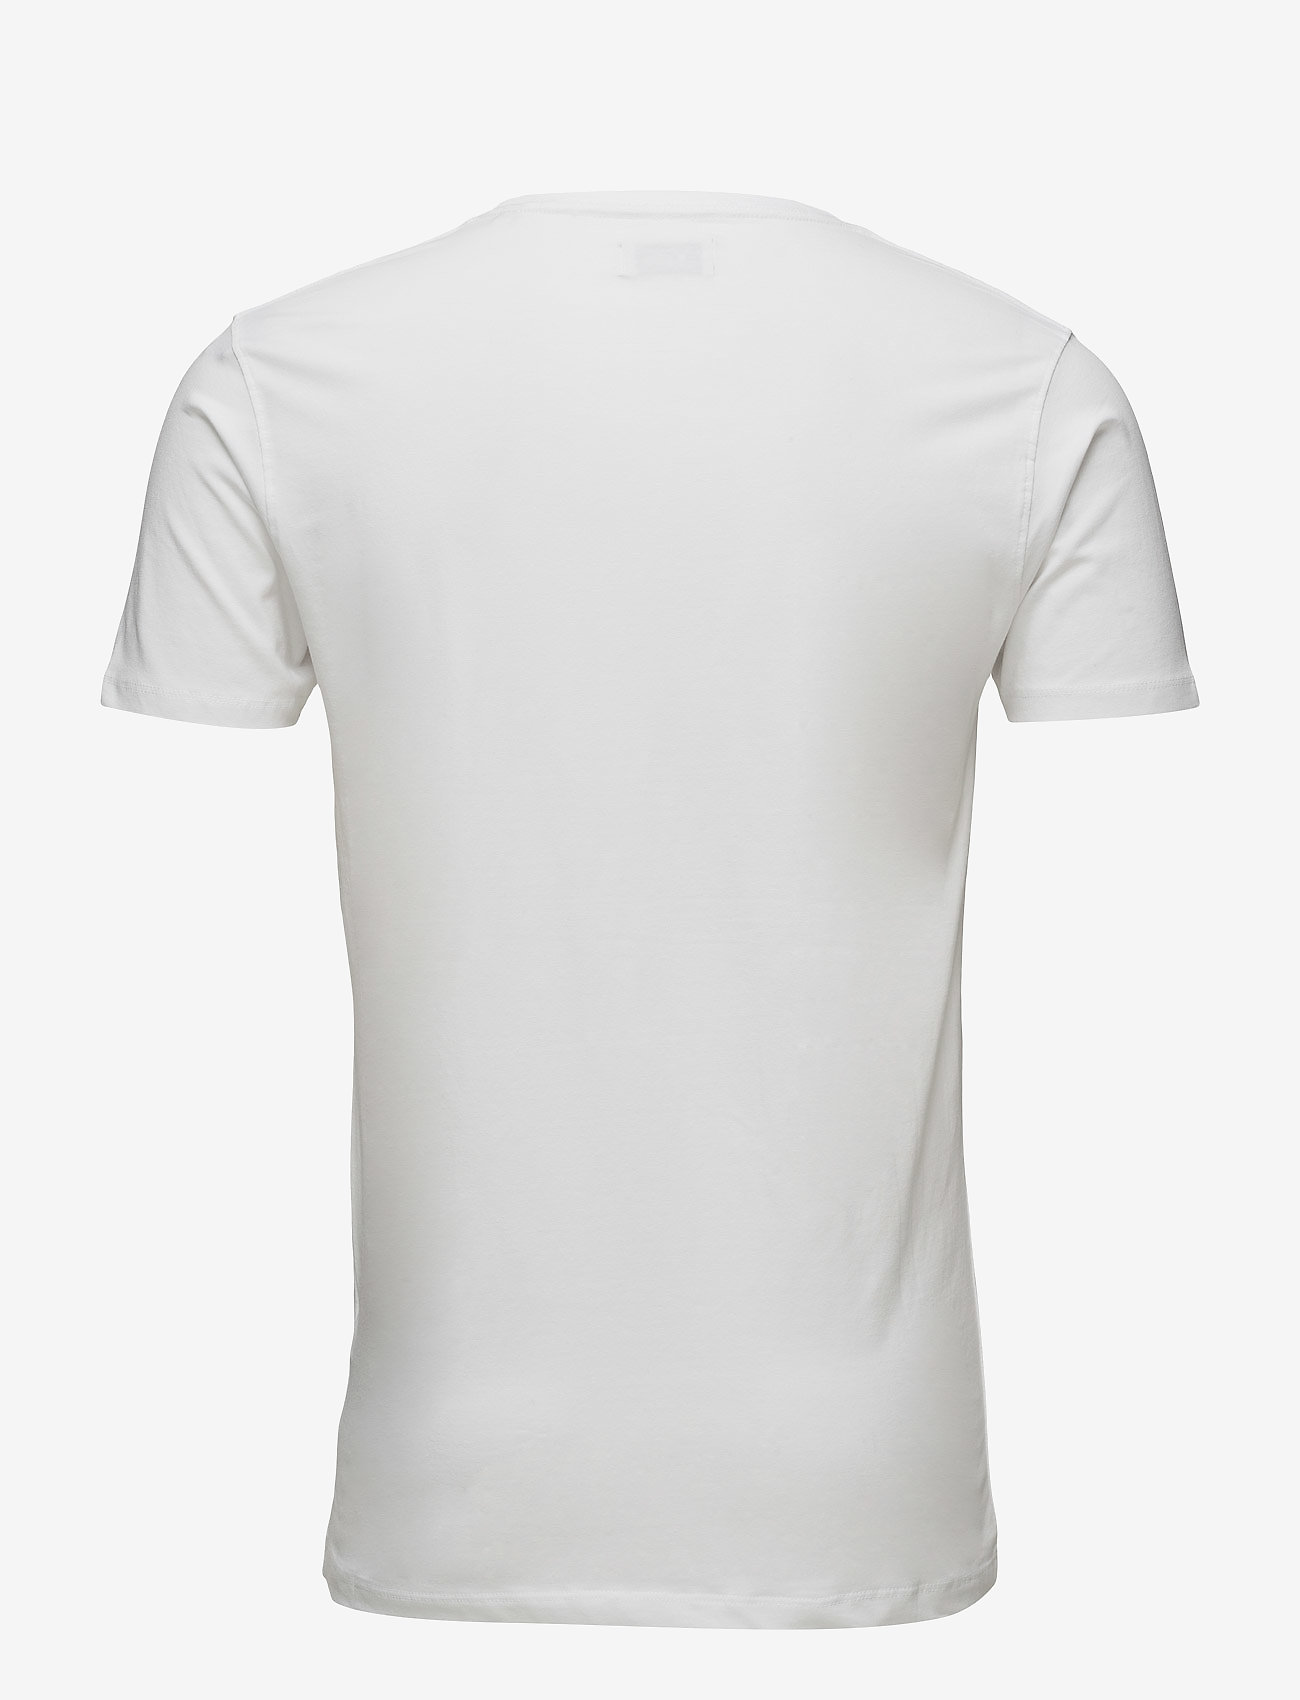 Boozt Merchandise - Mens stretch O-neck tee s/s - short-sleeved t-shirts - white - 1